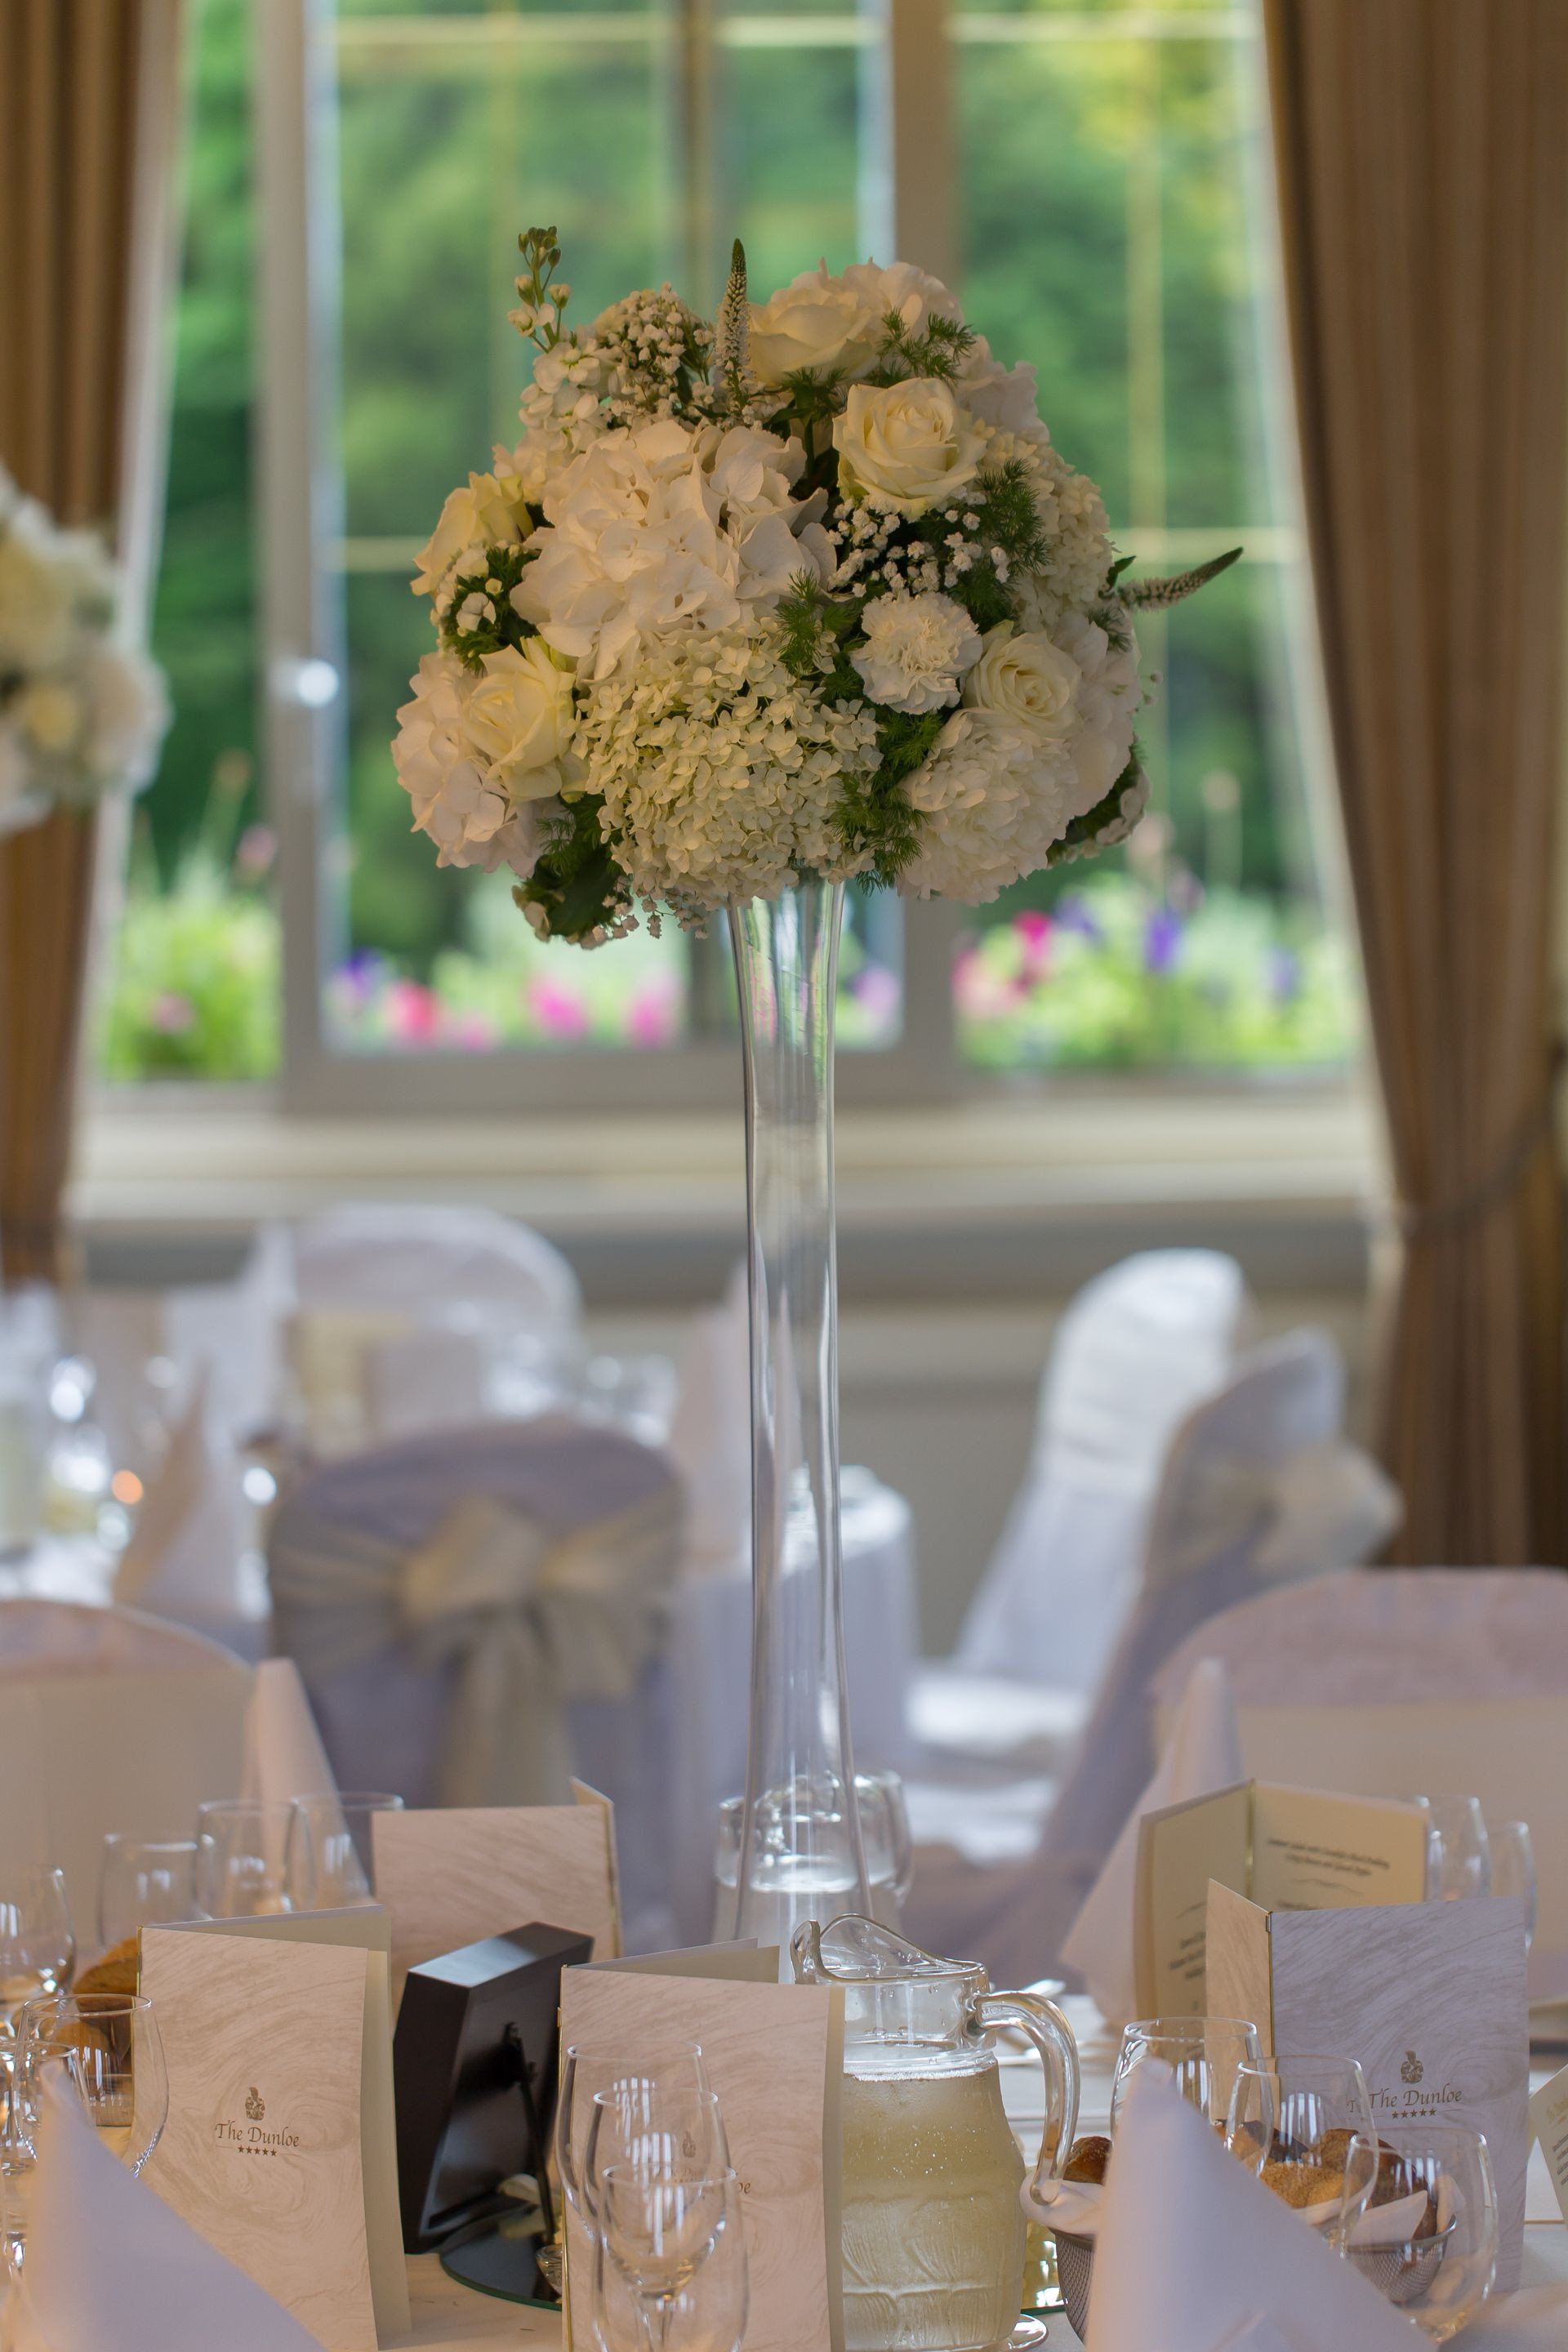 Tall Silver Vases for Wedding Centerpieces Of Tall Glass Vase Centerpiece with Hydrangeas Service Providers Intended for Tall Glass Vase Centerpiece with Hydrangeas